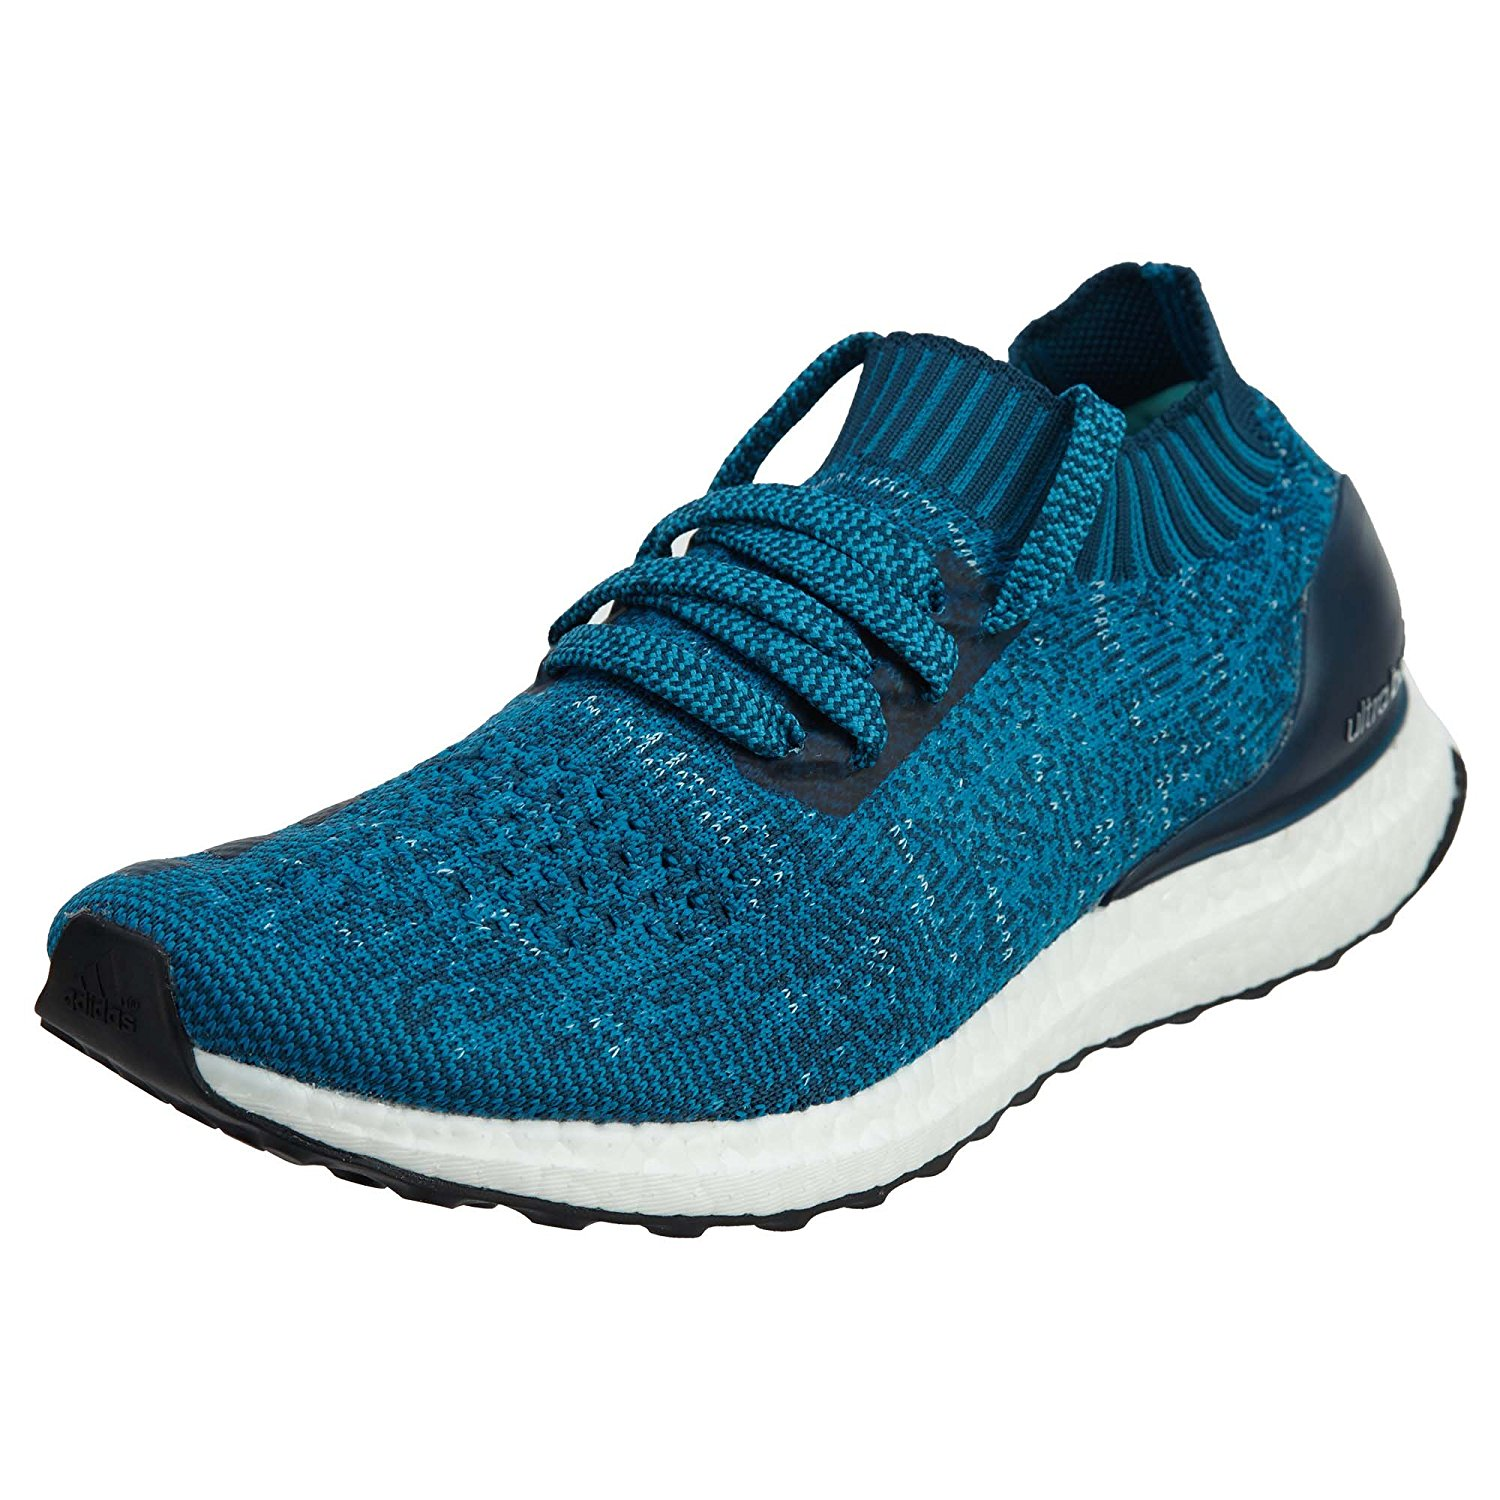 03773226169 Adidas Ultra Boost Uncaged Reviewed   Tested in 2019